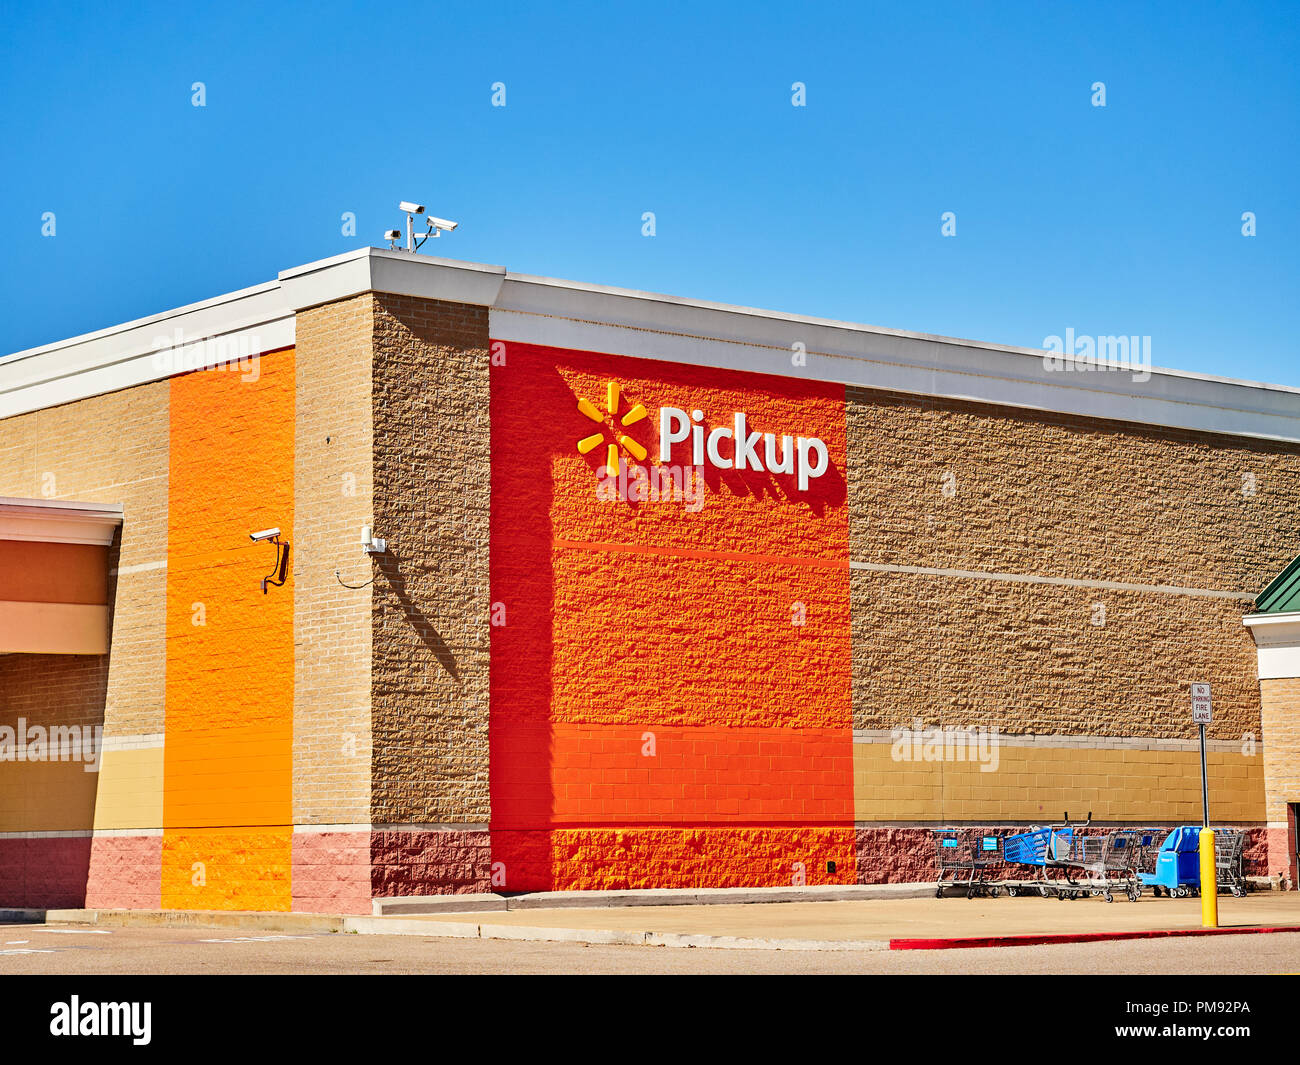 Walmart pickup sign and corporate logo on exterior wall of a super Walmart store in Montgomery Alabama, USA. Stock Photo